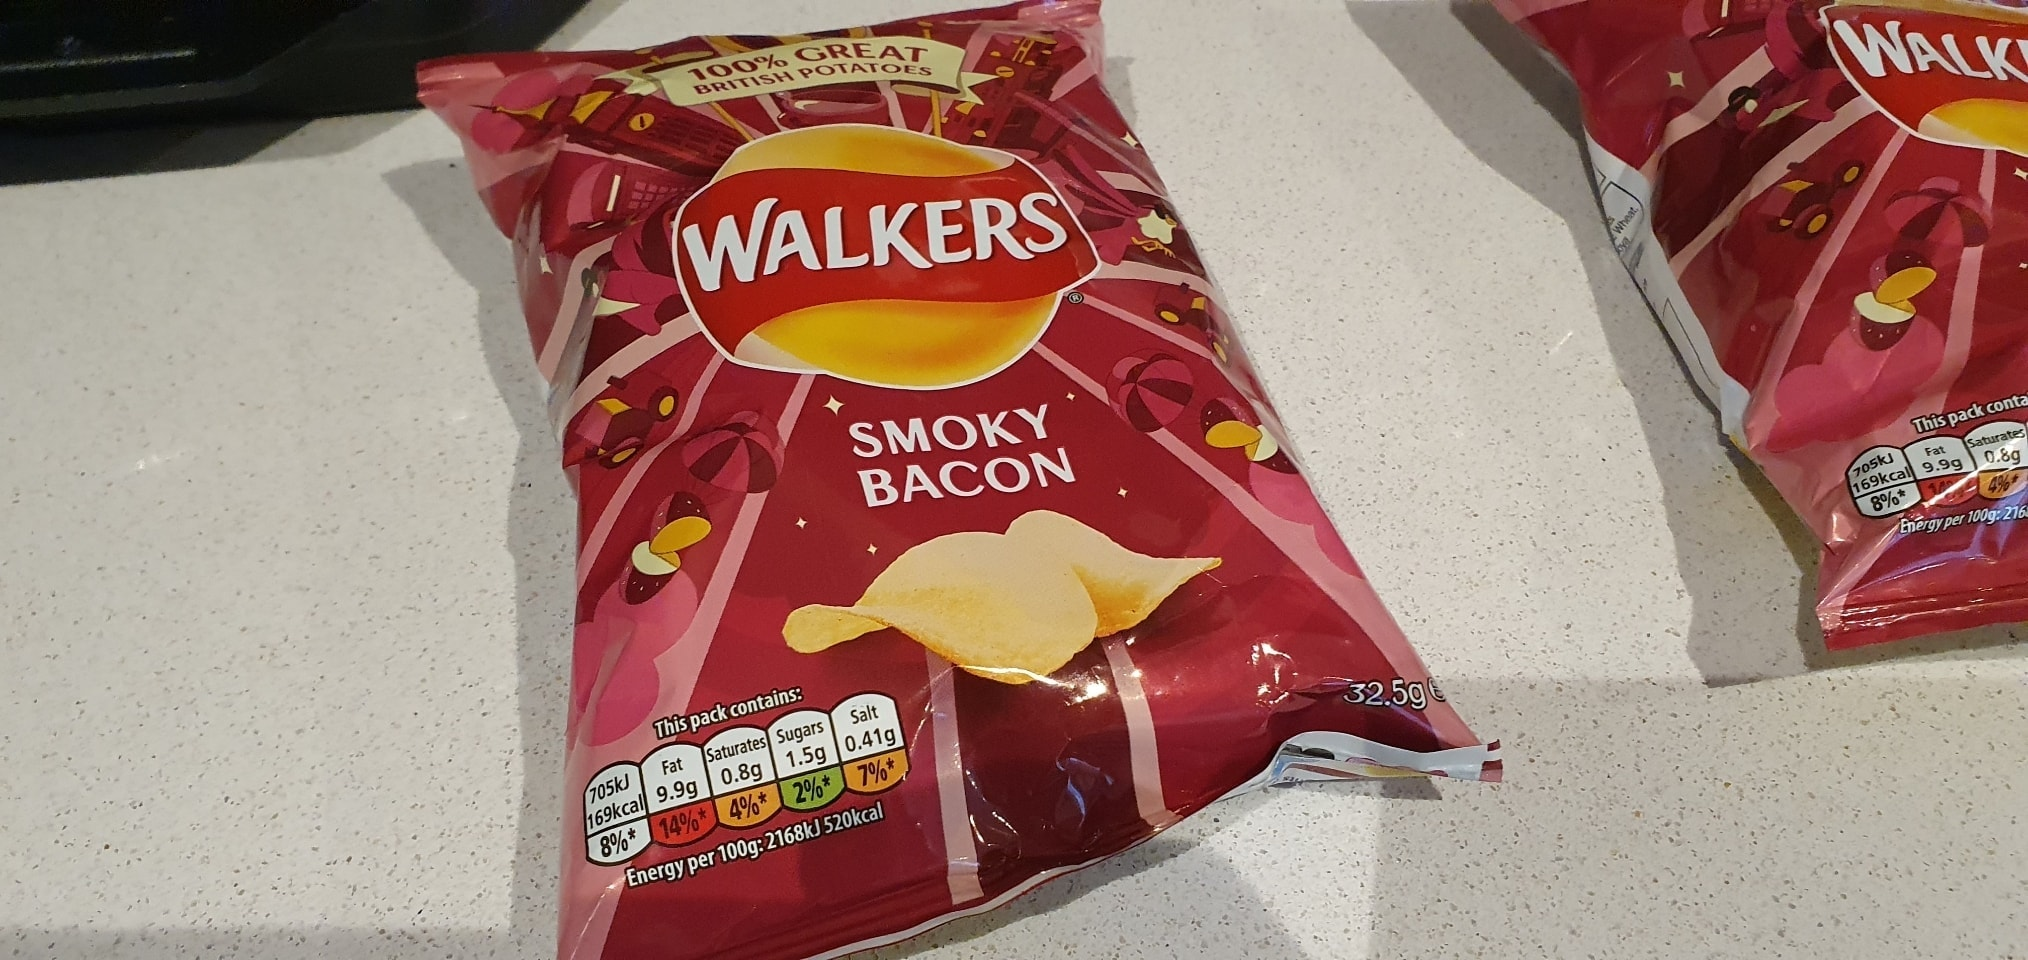 Pack if Smoky Bacon Crisps